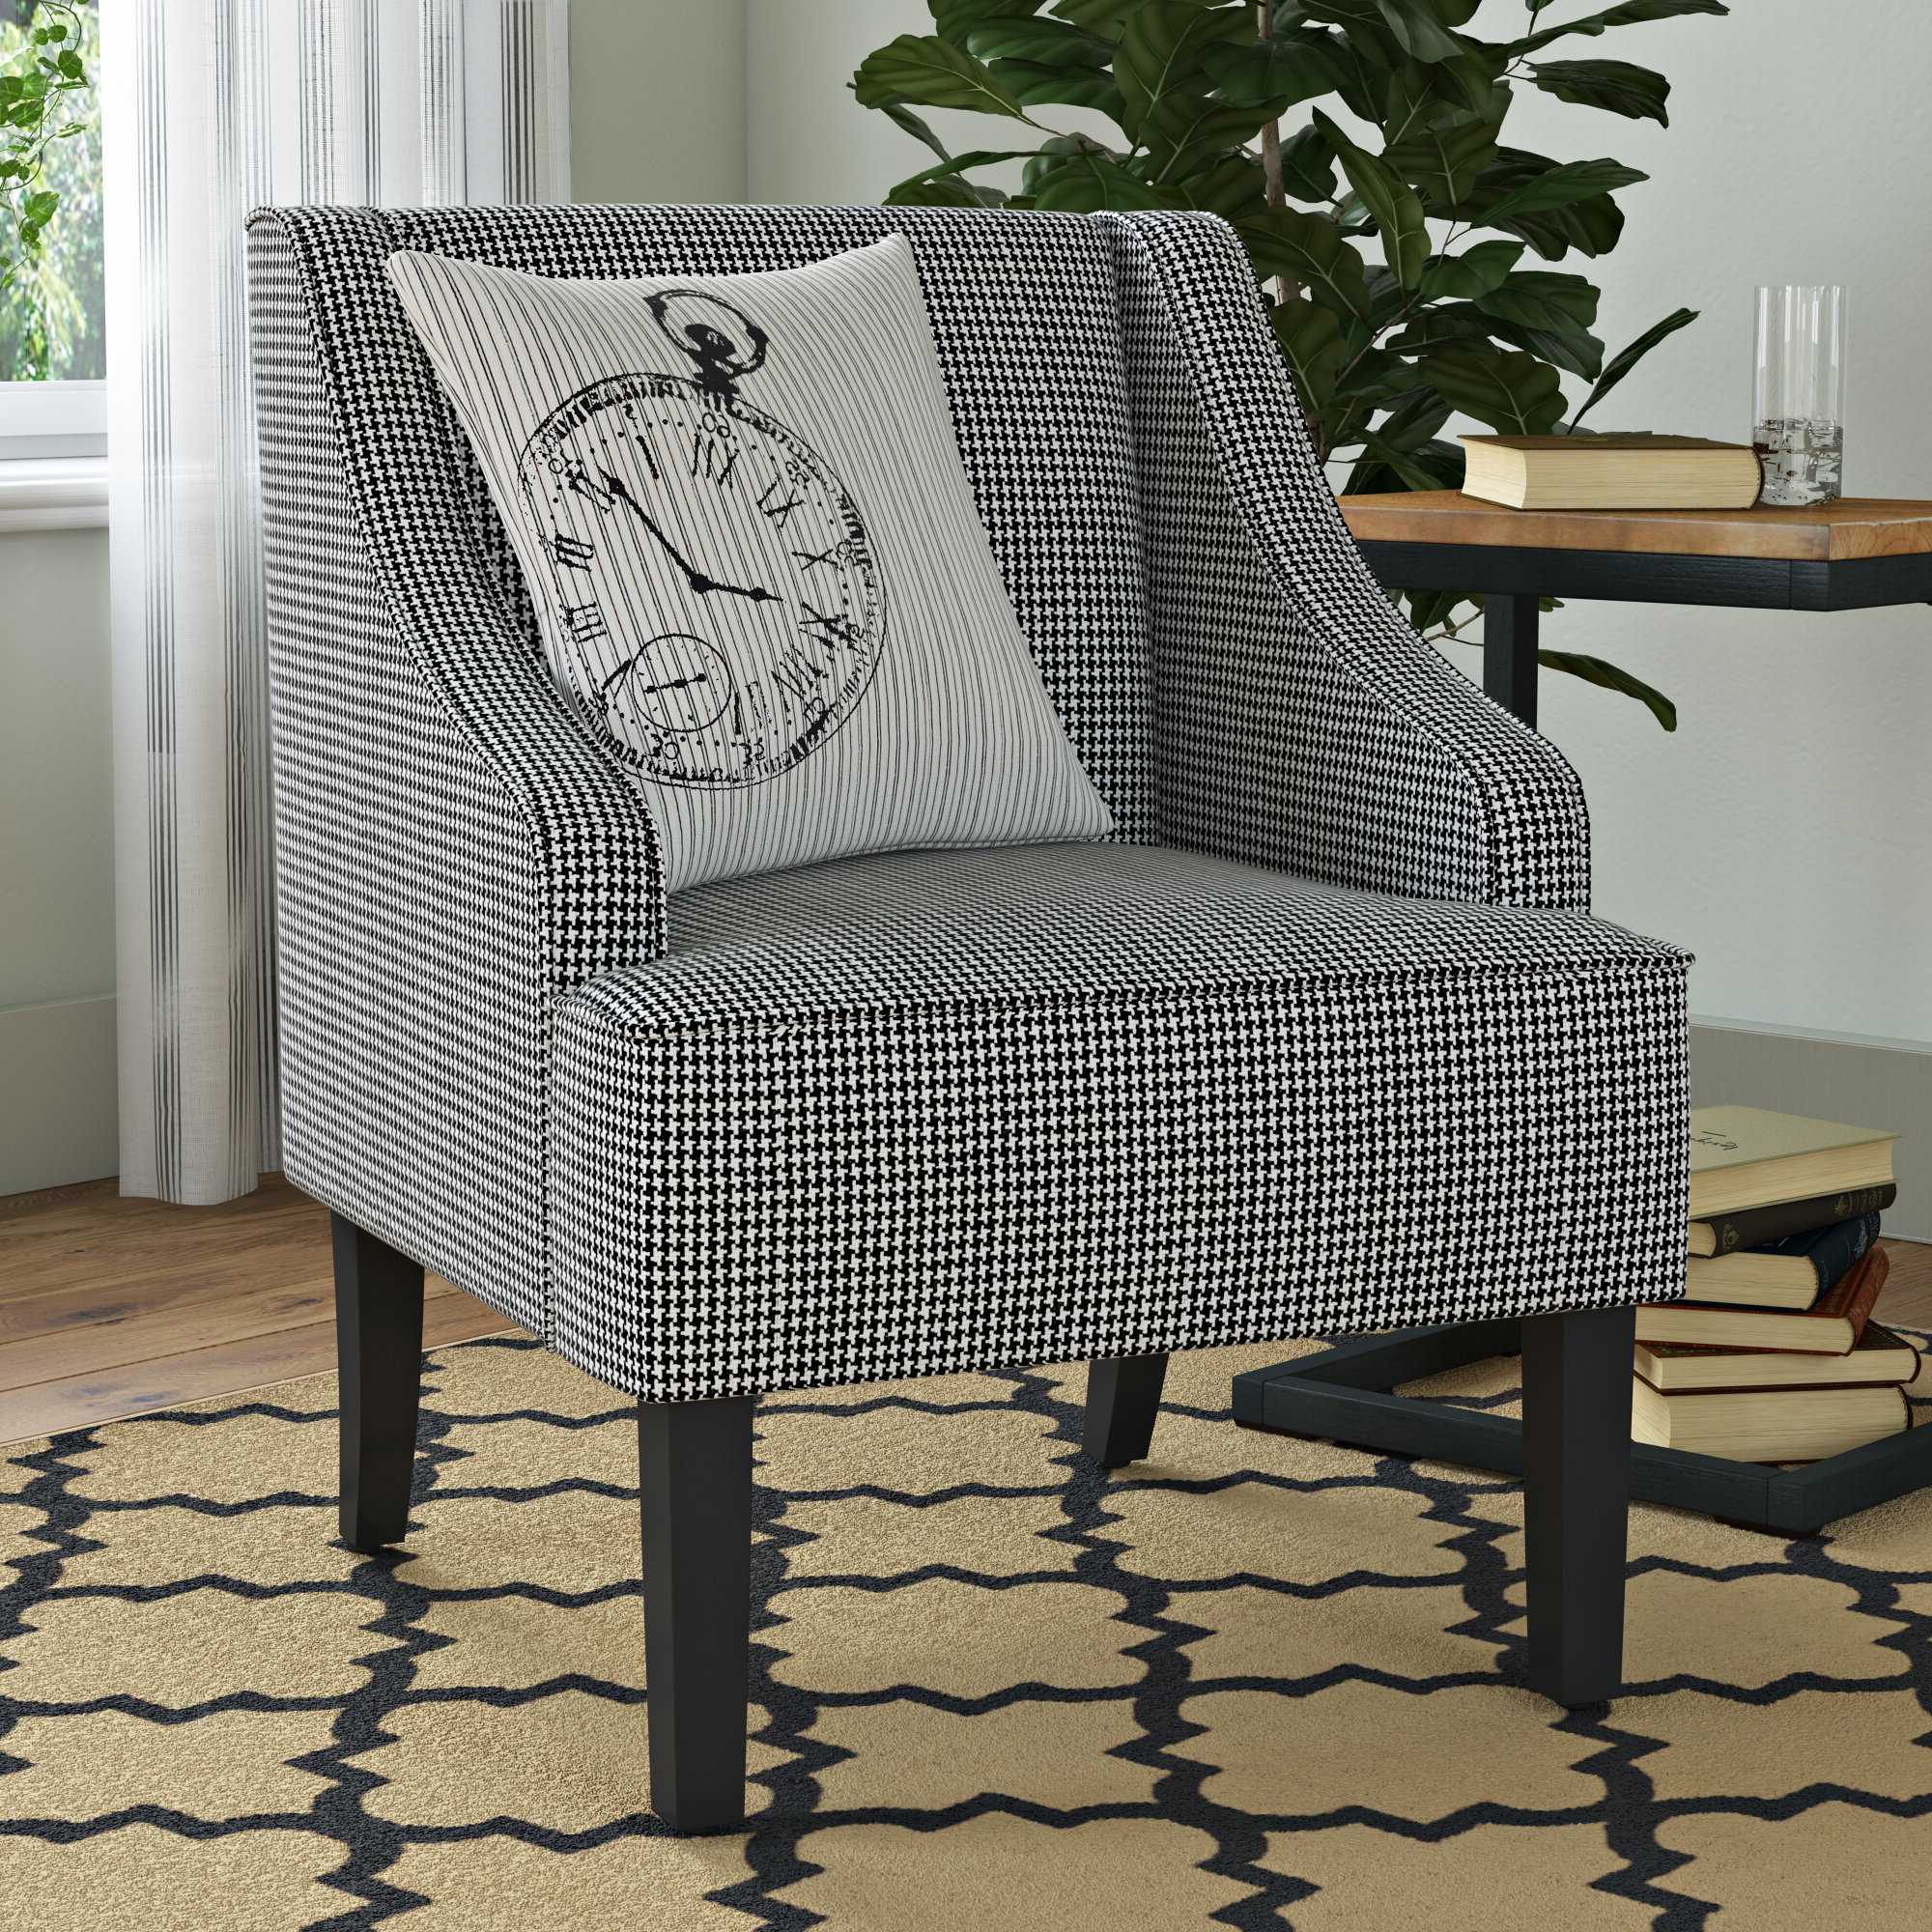 Wayfair Within Briseno Barrel Chairs (View 18 of 20)